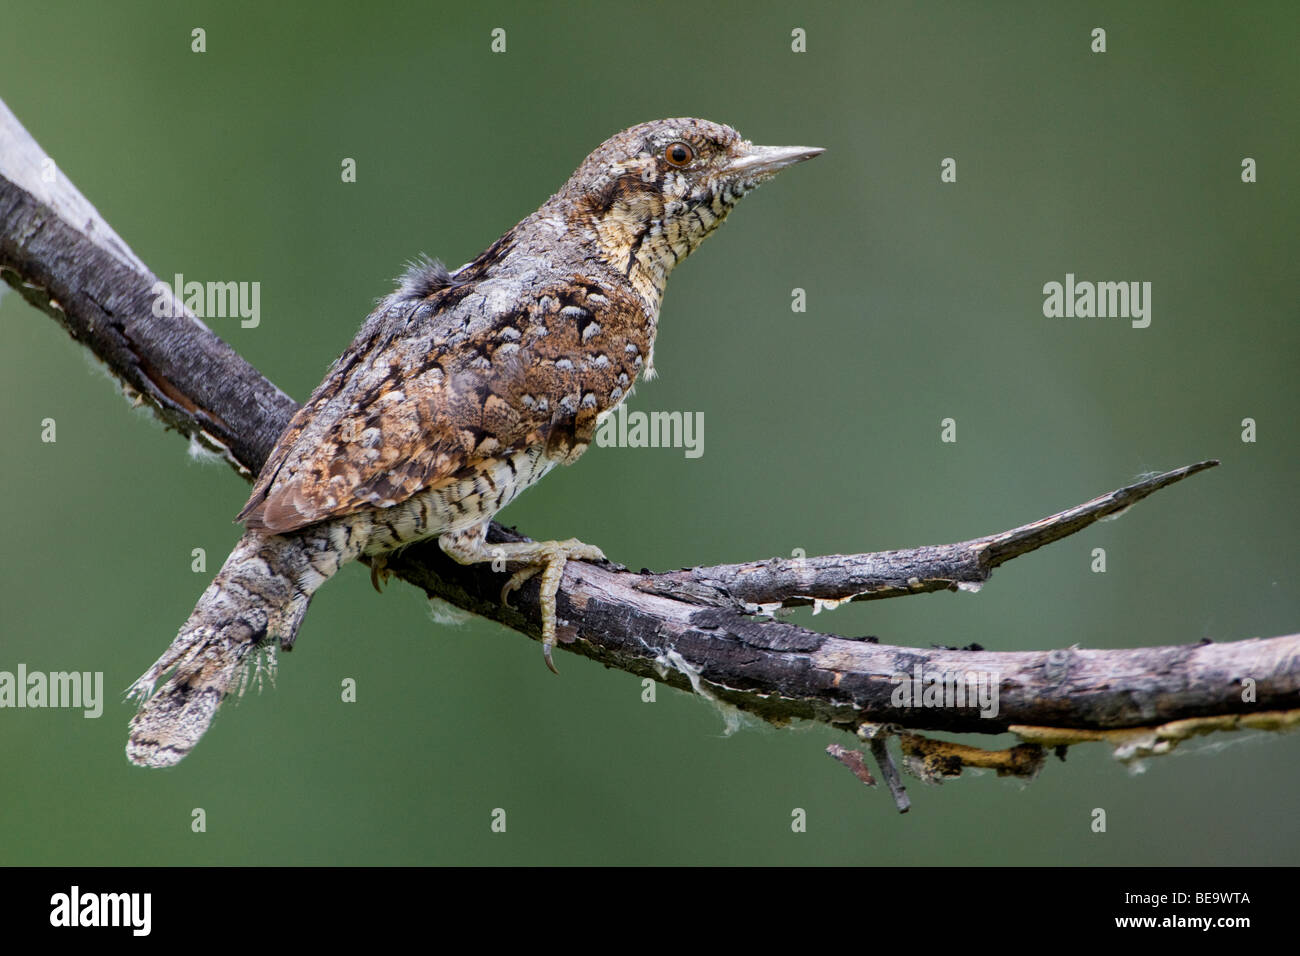 Wryneck on branch - Stock Image